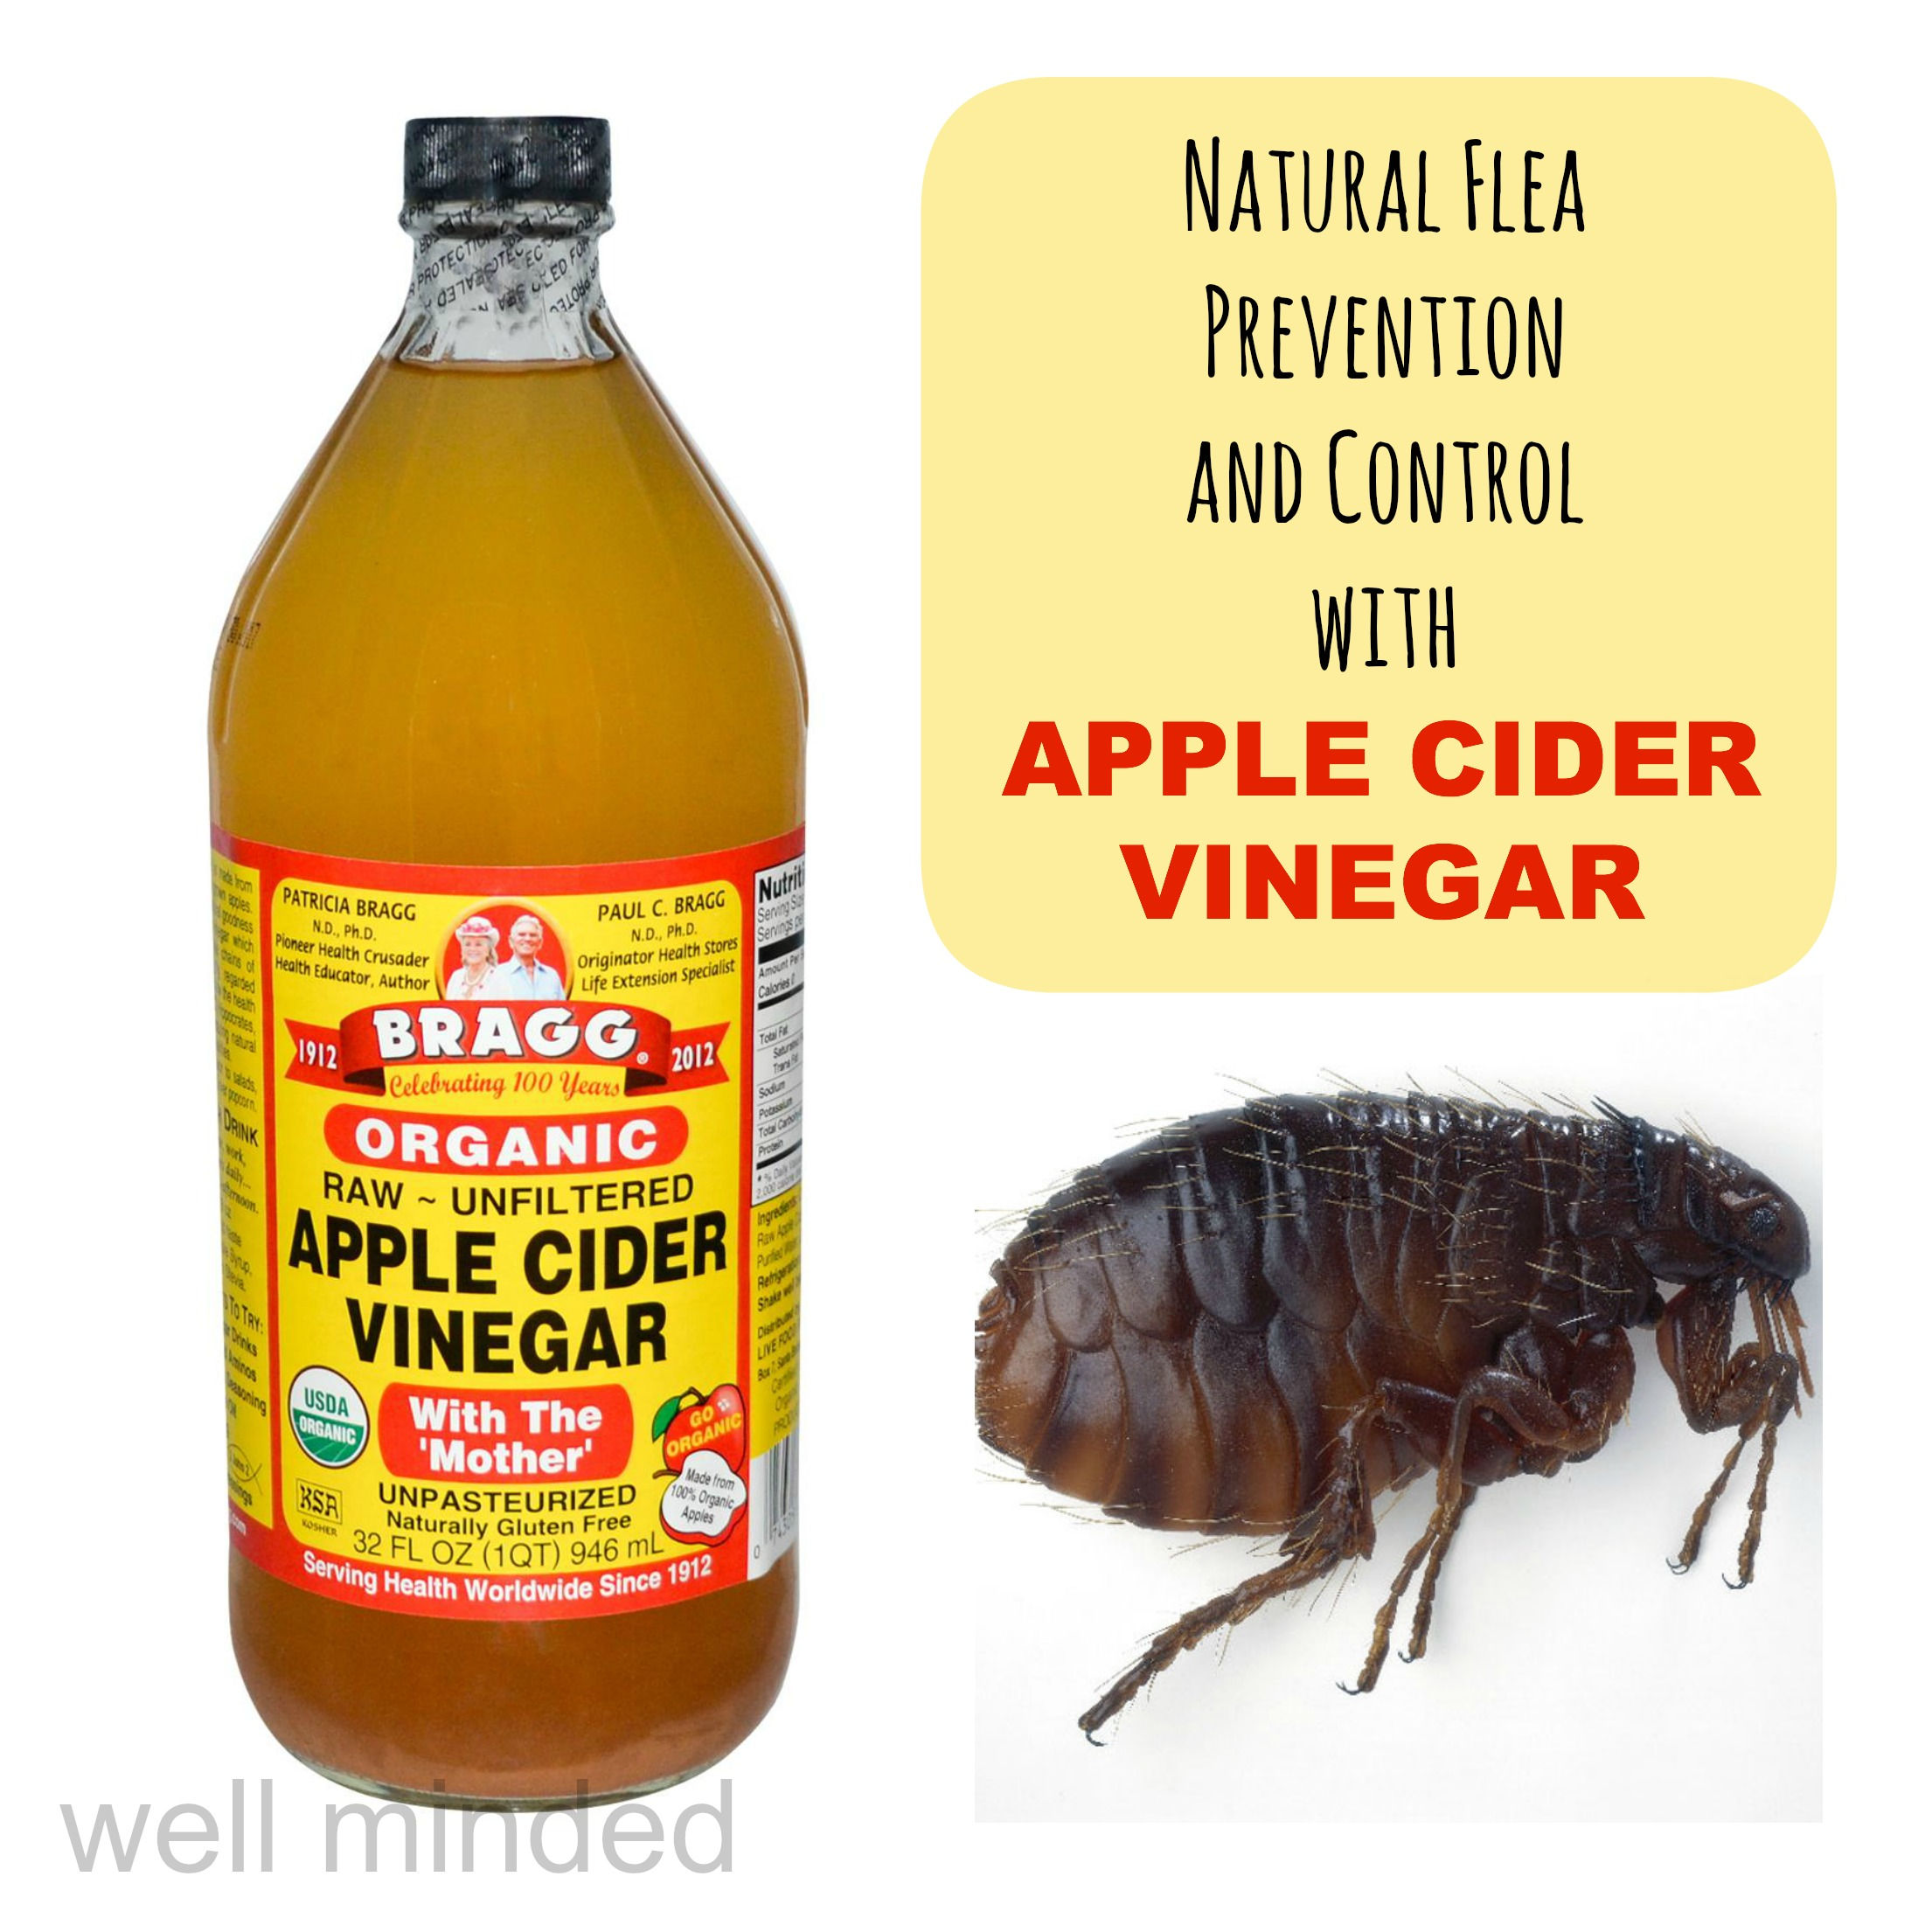 using apple cider vinegar for natural